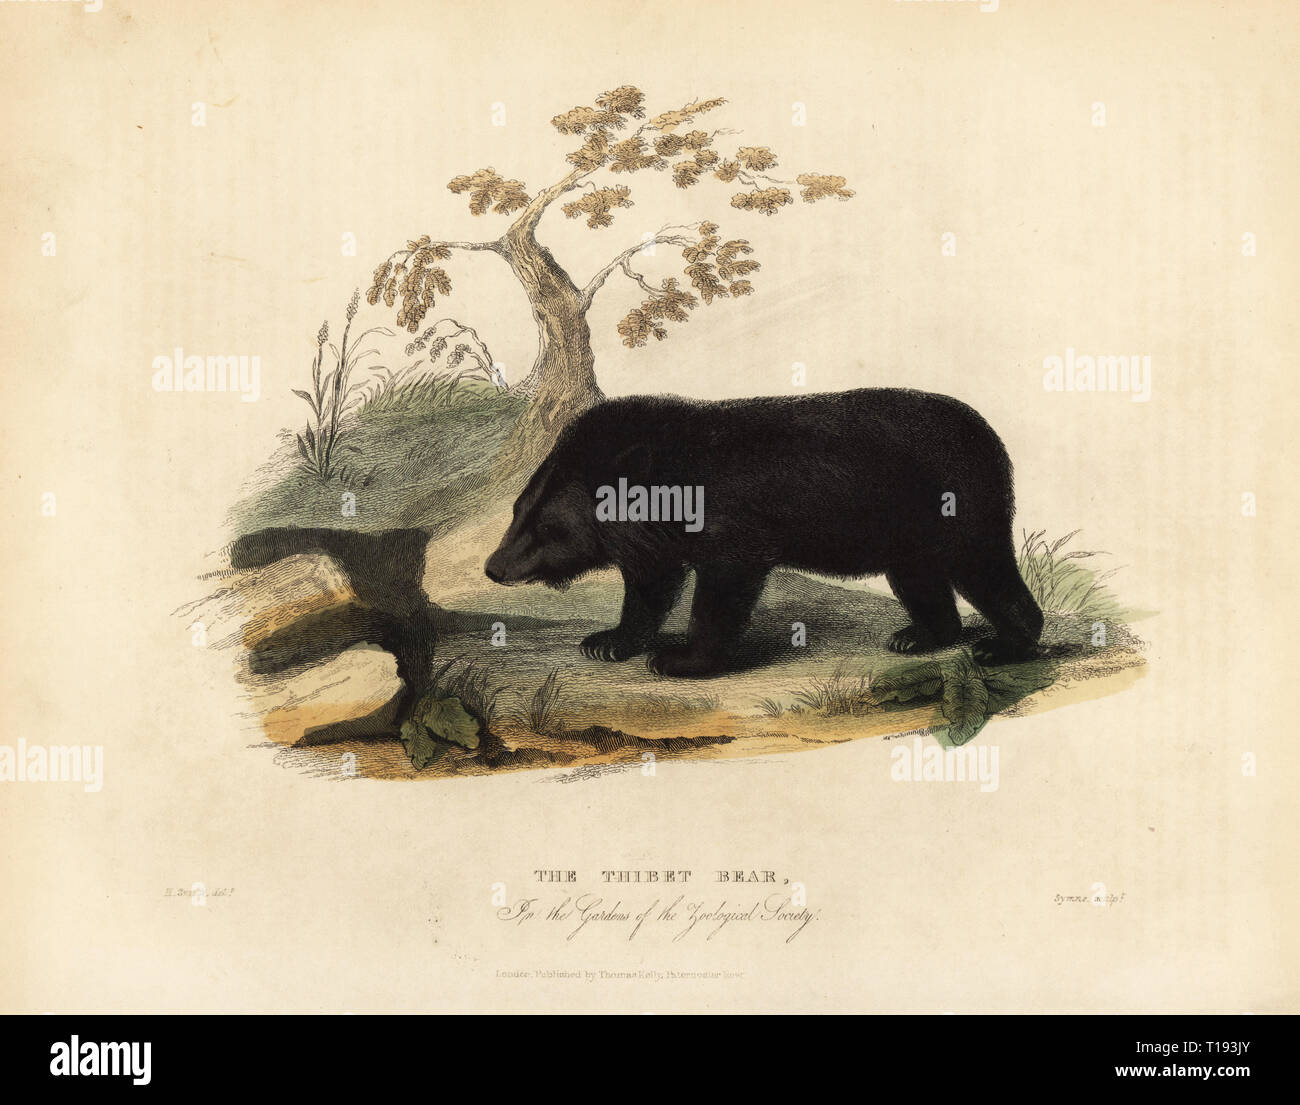 The Thibet bear or Himalayan black bear, Ursus thibetanus laniger, in the Gardens of the Zoological Society. Handcoloured copperplate engraved by W. Symns after an illustration by Horace S. Smith from William Smellie's translation of Count Georges Buffon's History of the Earth and Animated Nature, Thomas Kelly, London, 1829. - Stock Image